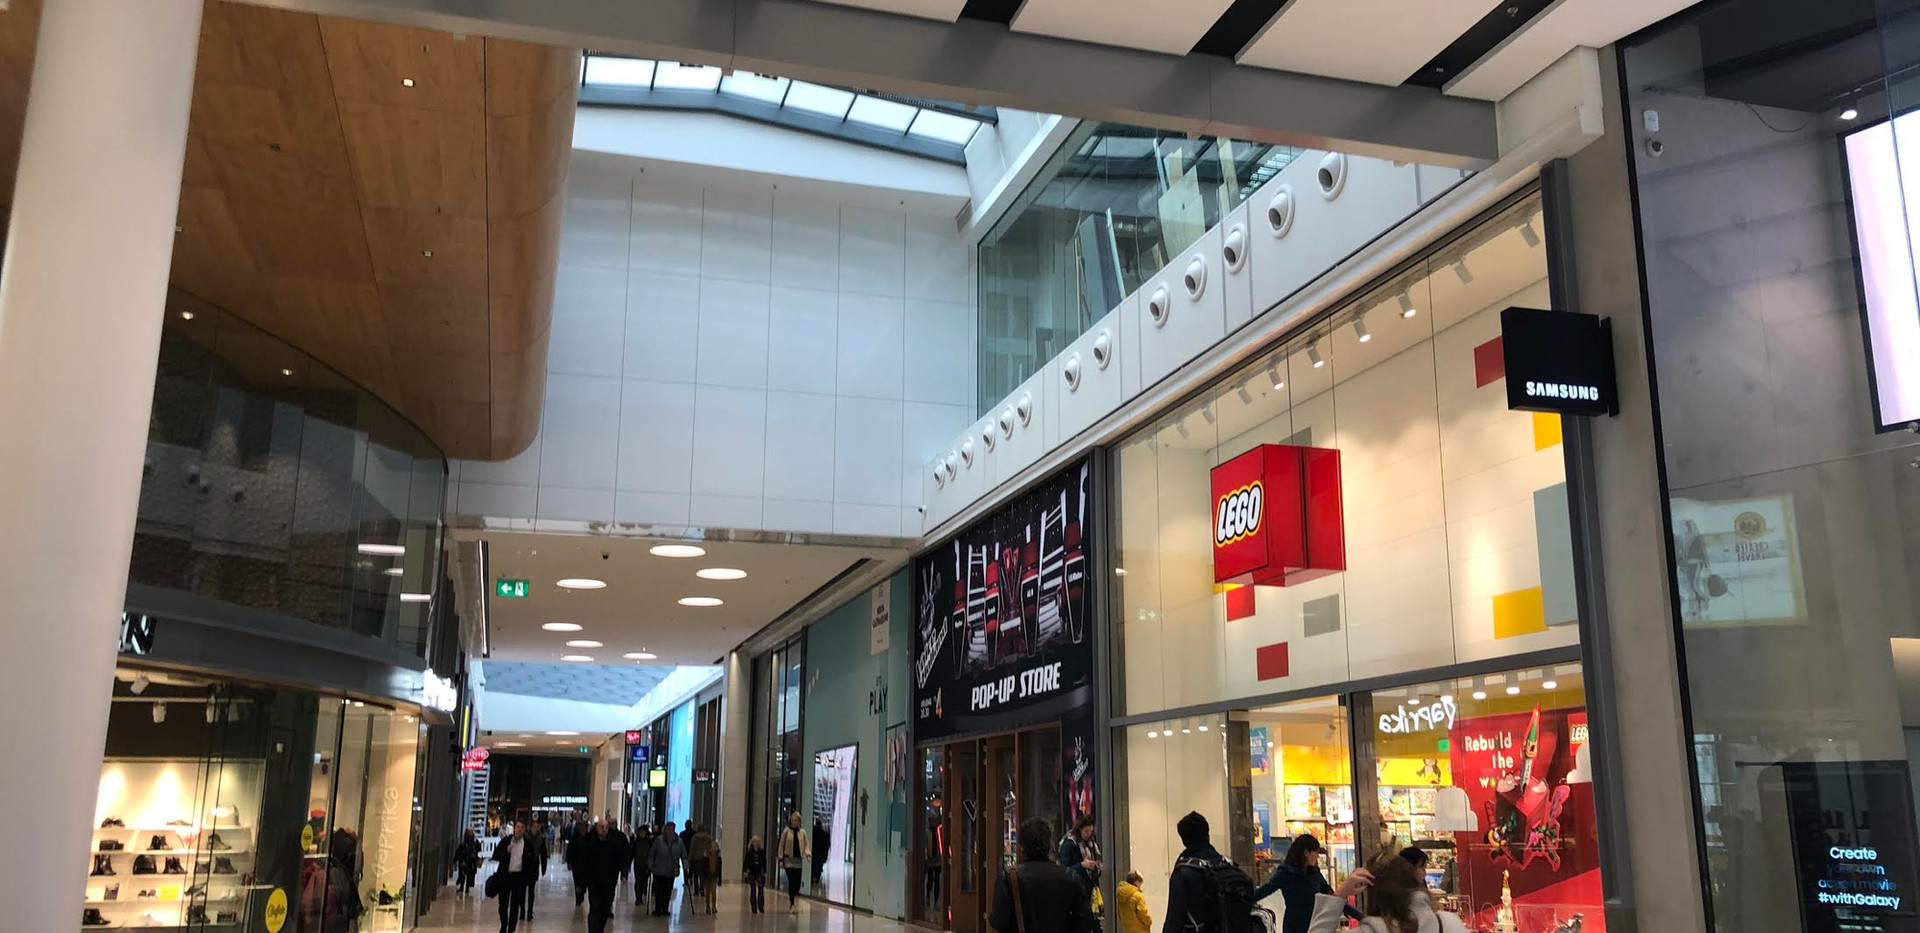 The Voice of Holland pop up store in Shopping mall Hoog catharijne, Utrecht